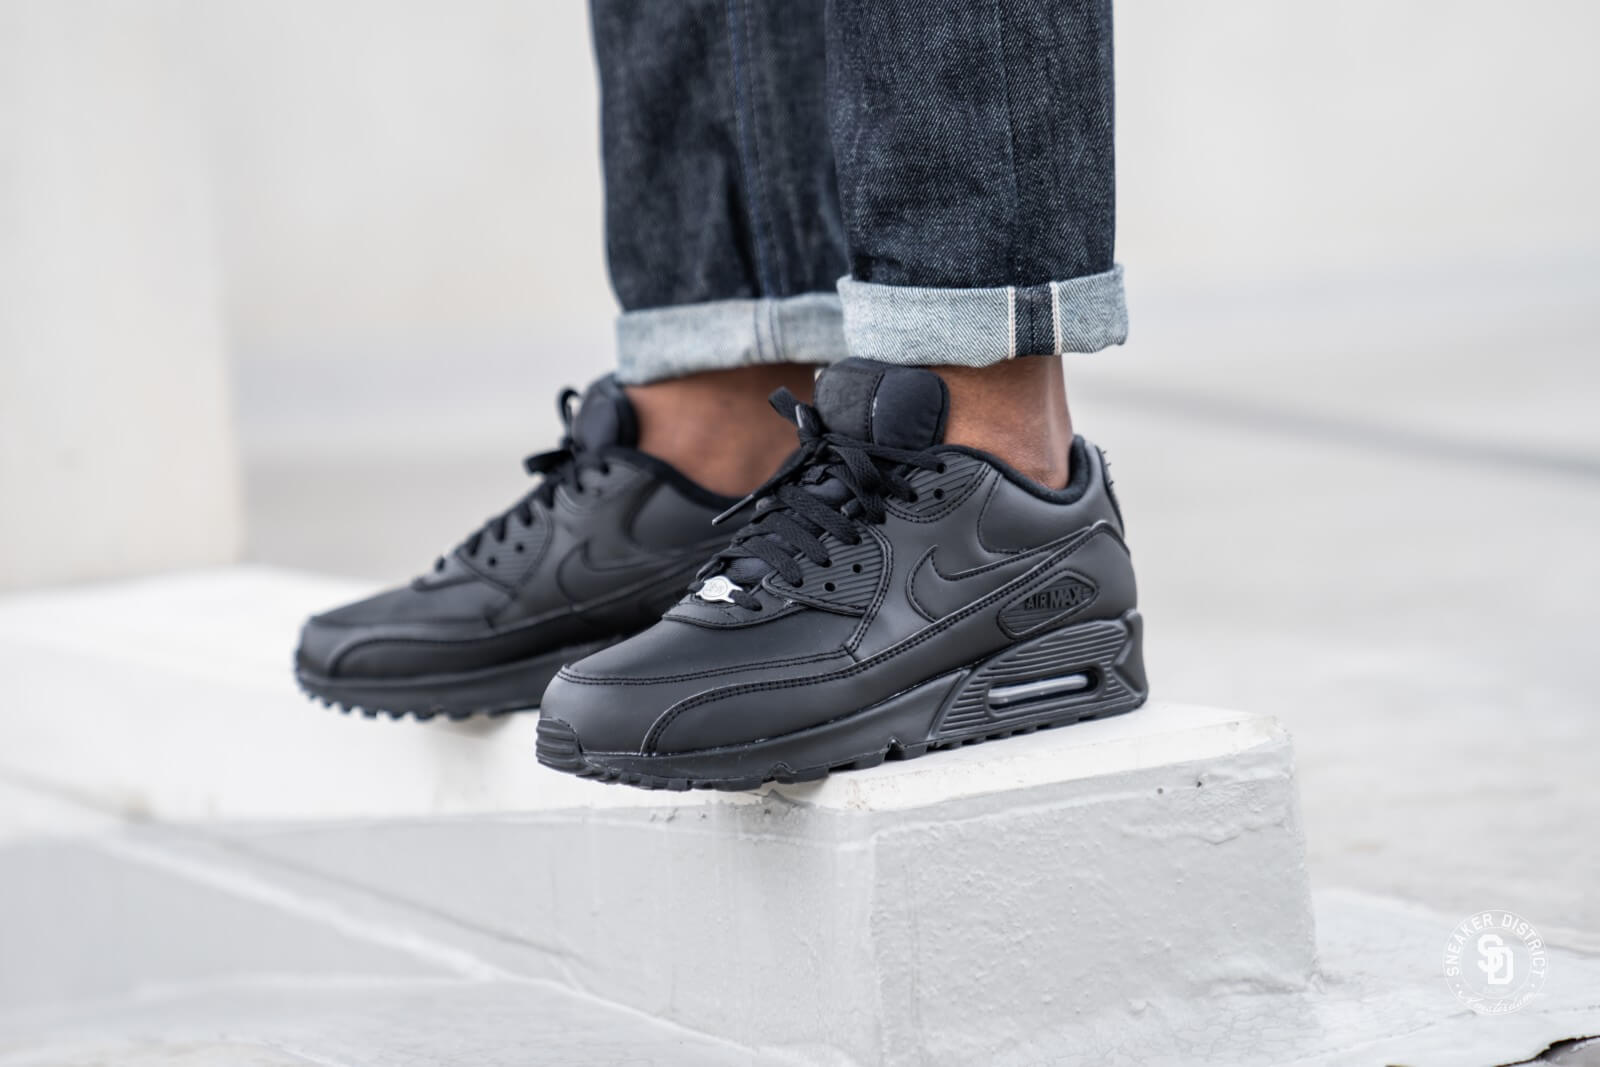 Nike Air Max 90 Leather BlackBlack 302519 001